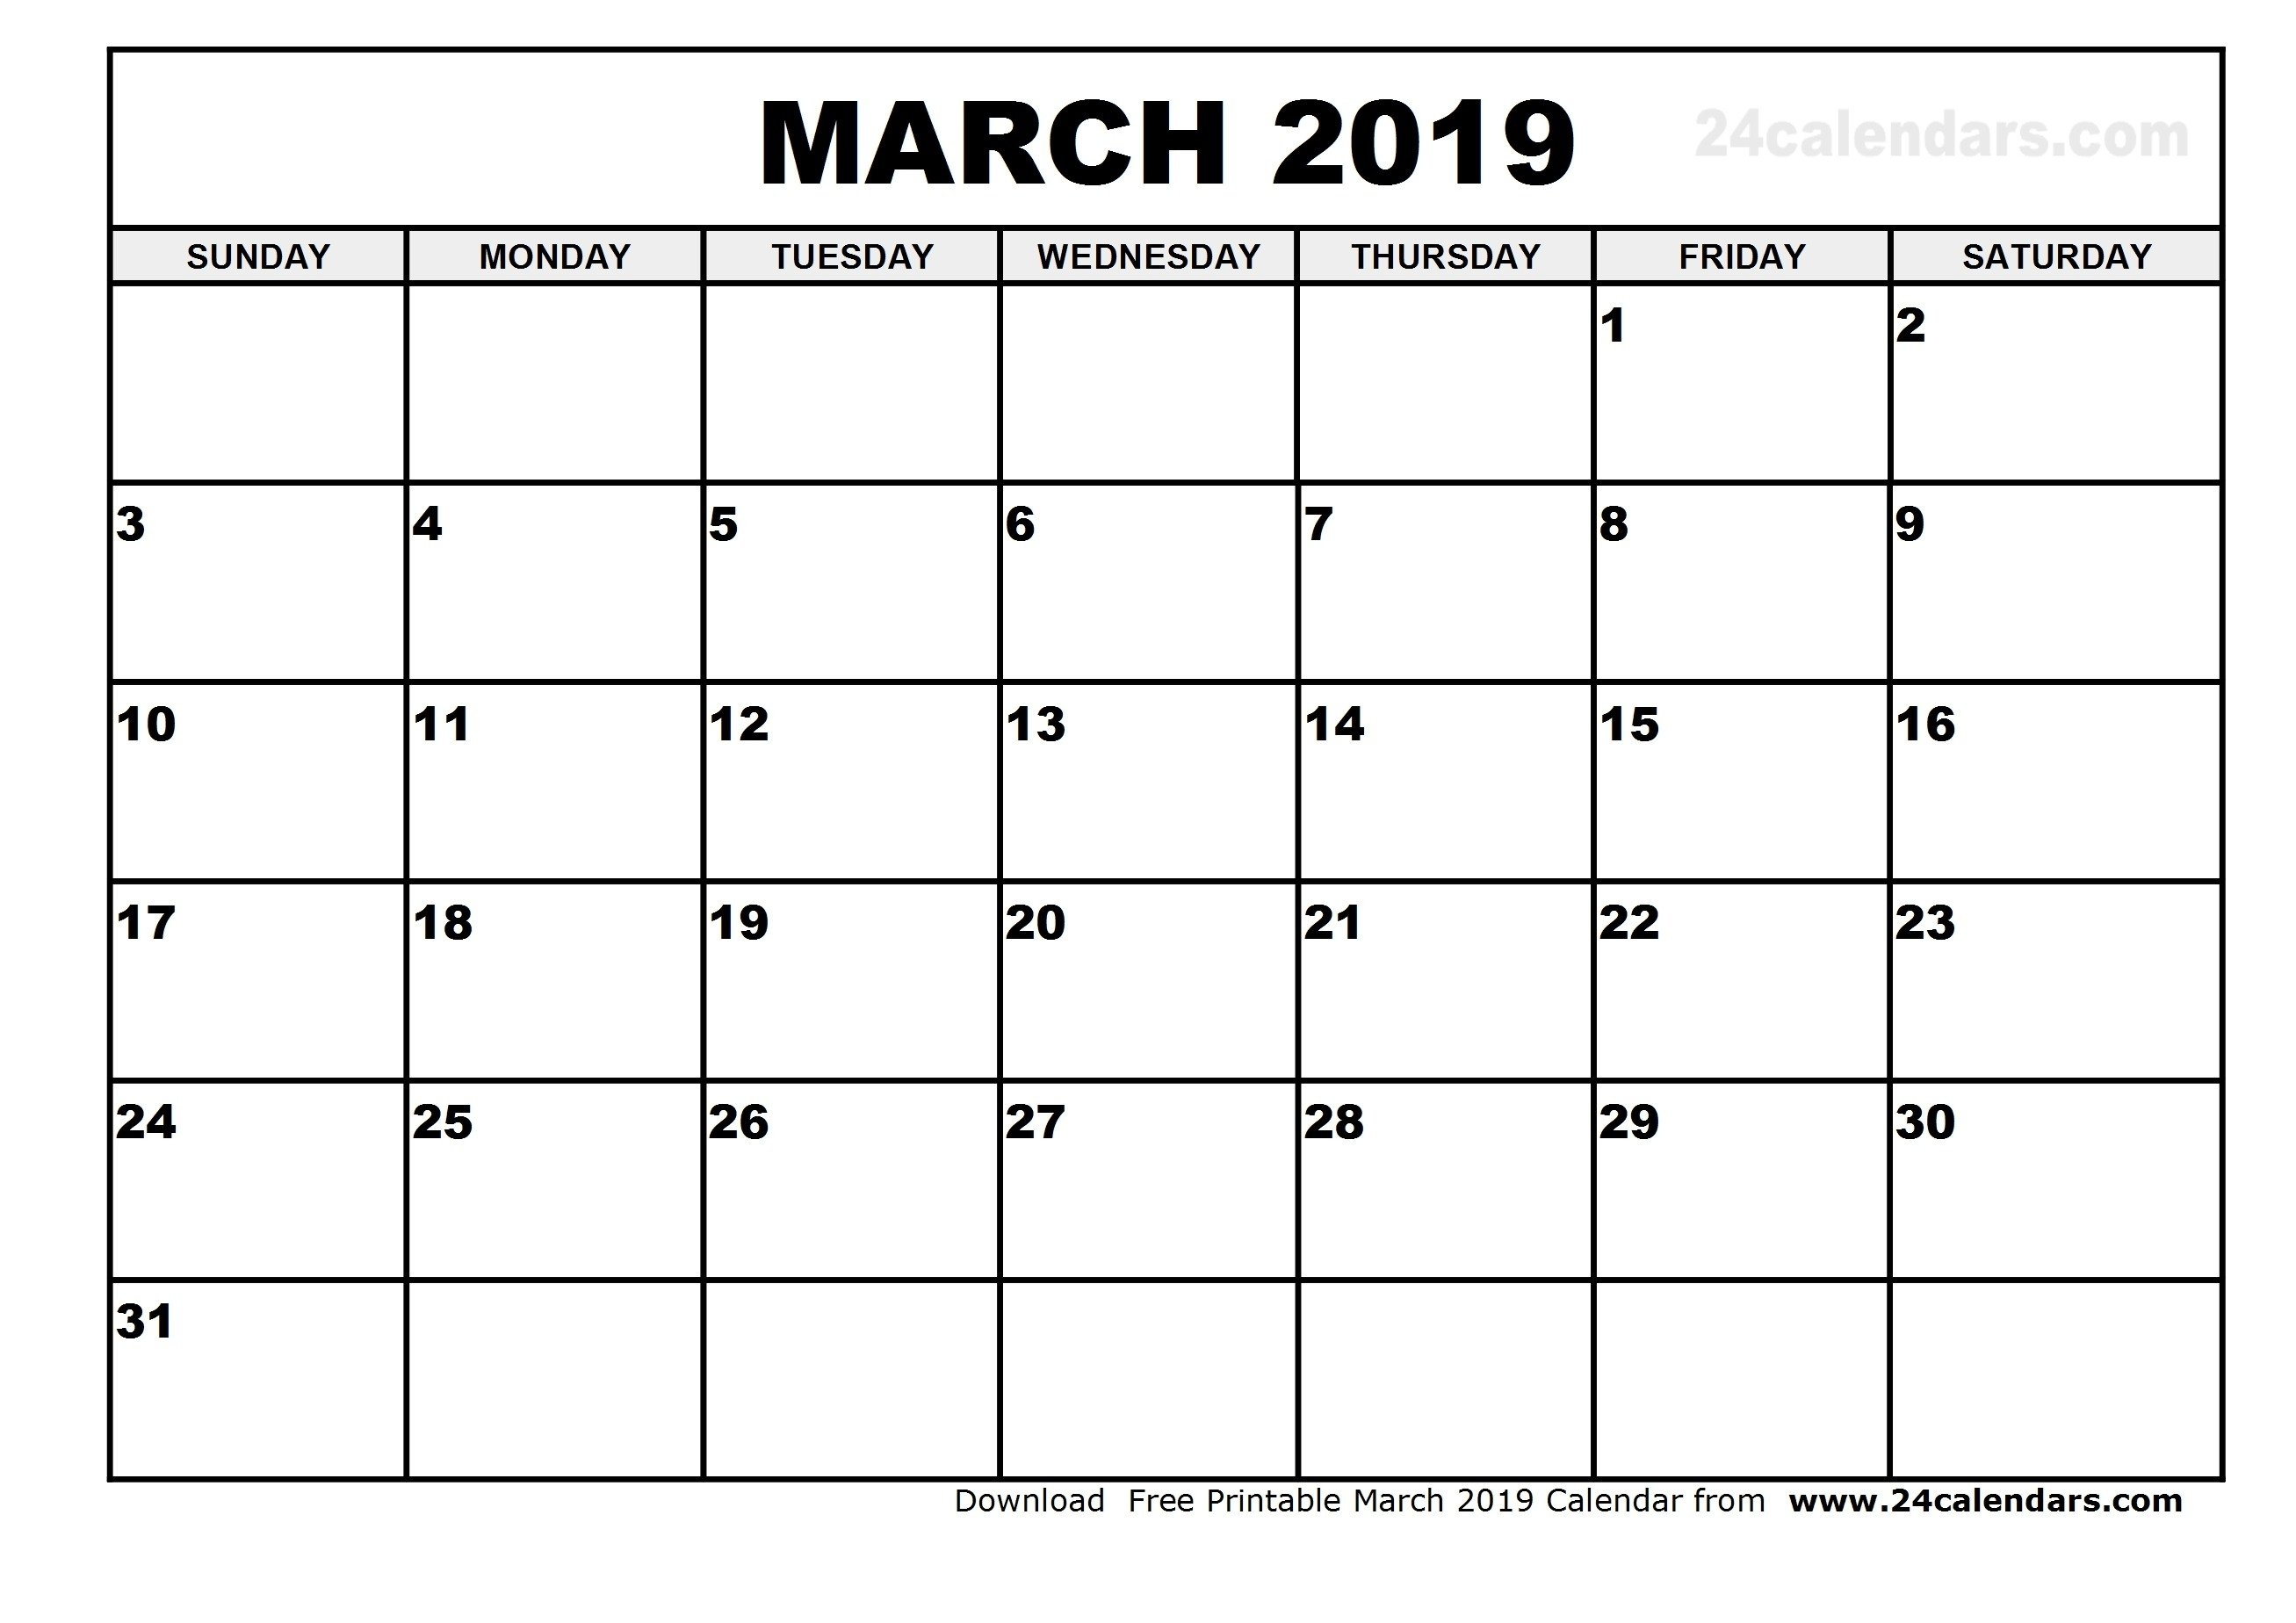 Free 6 Month Calendar January To June 2019 Template | Printable 6 Month Calendar Template 2019